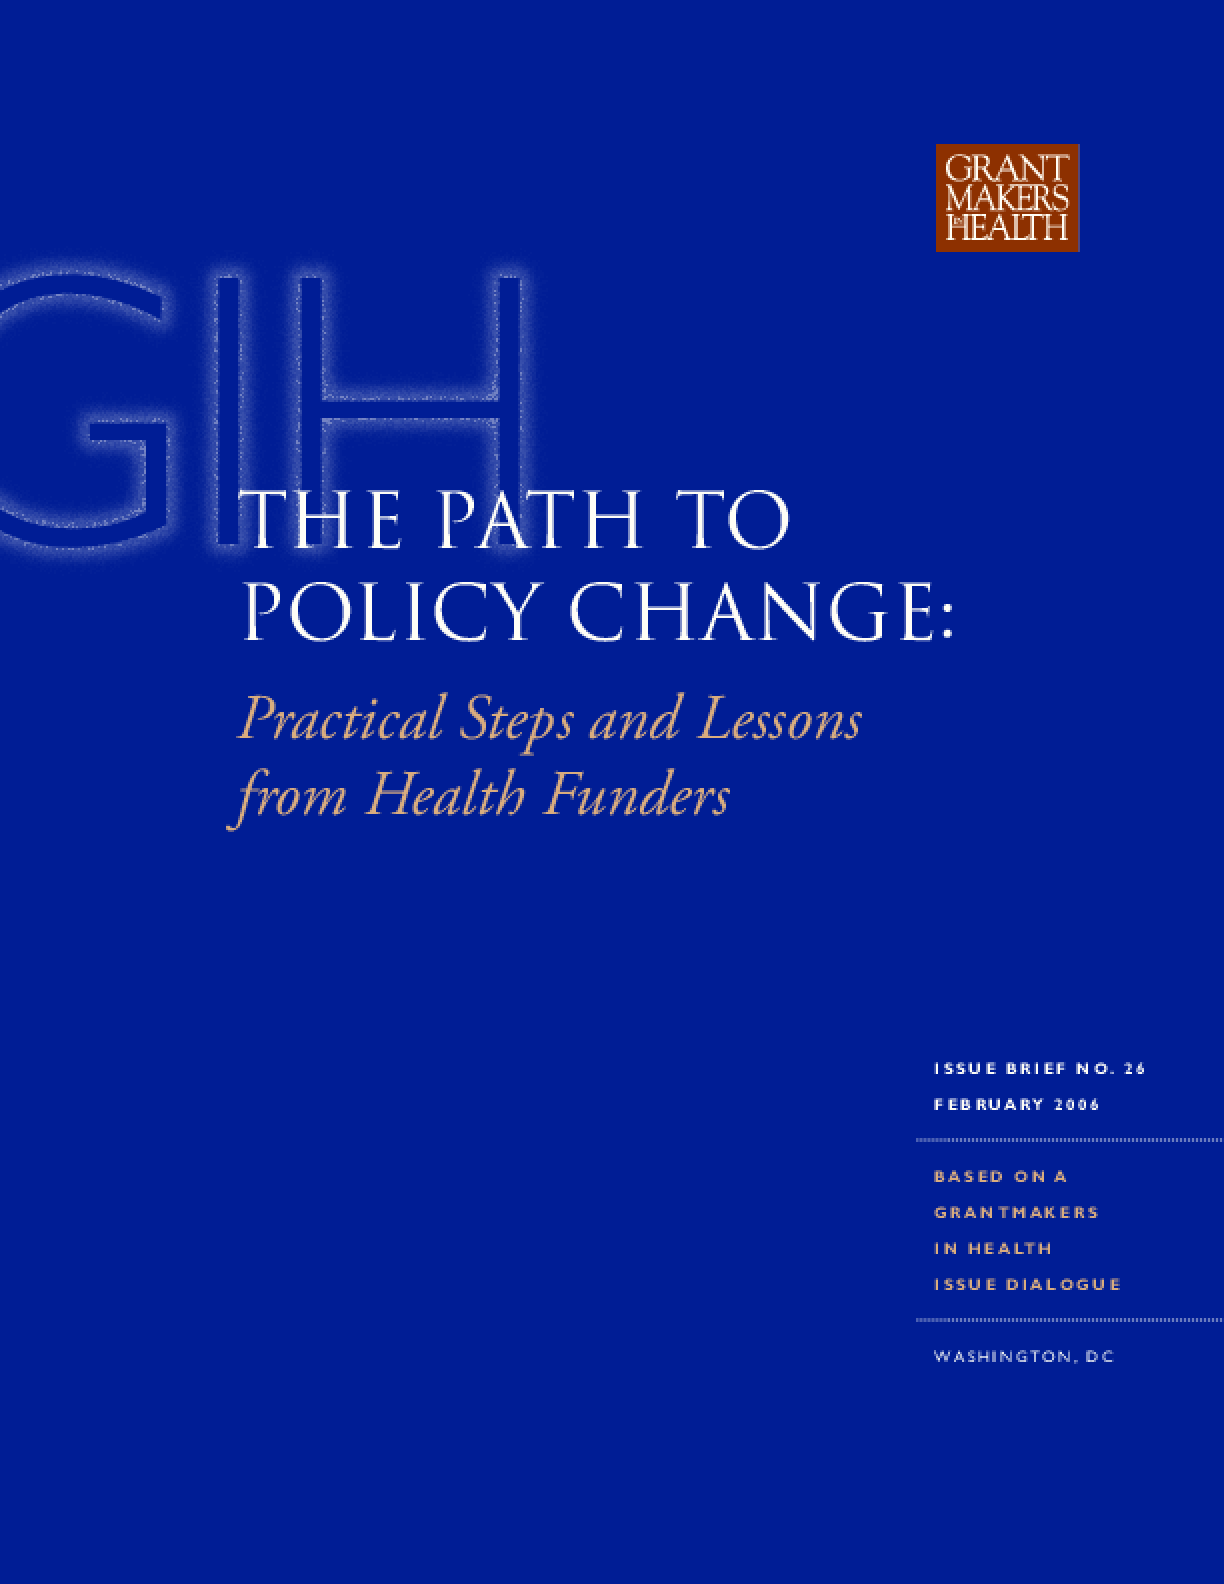 The Path to Policy Change: Practical Steps and Lessons From Health Funders